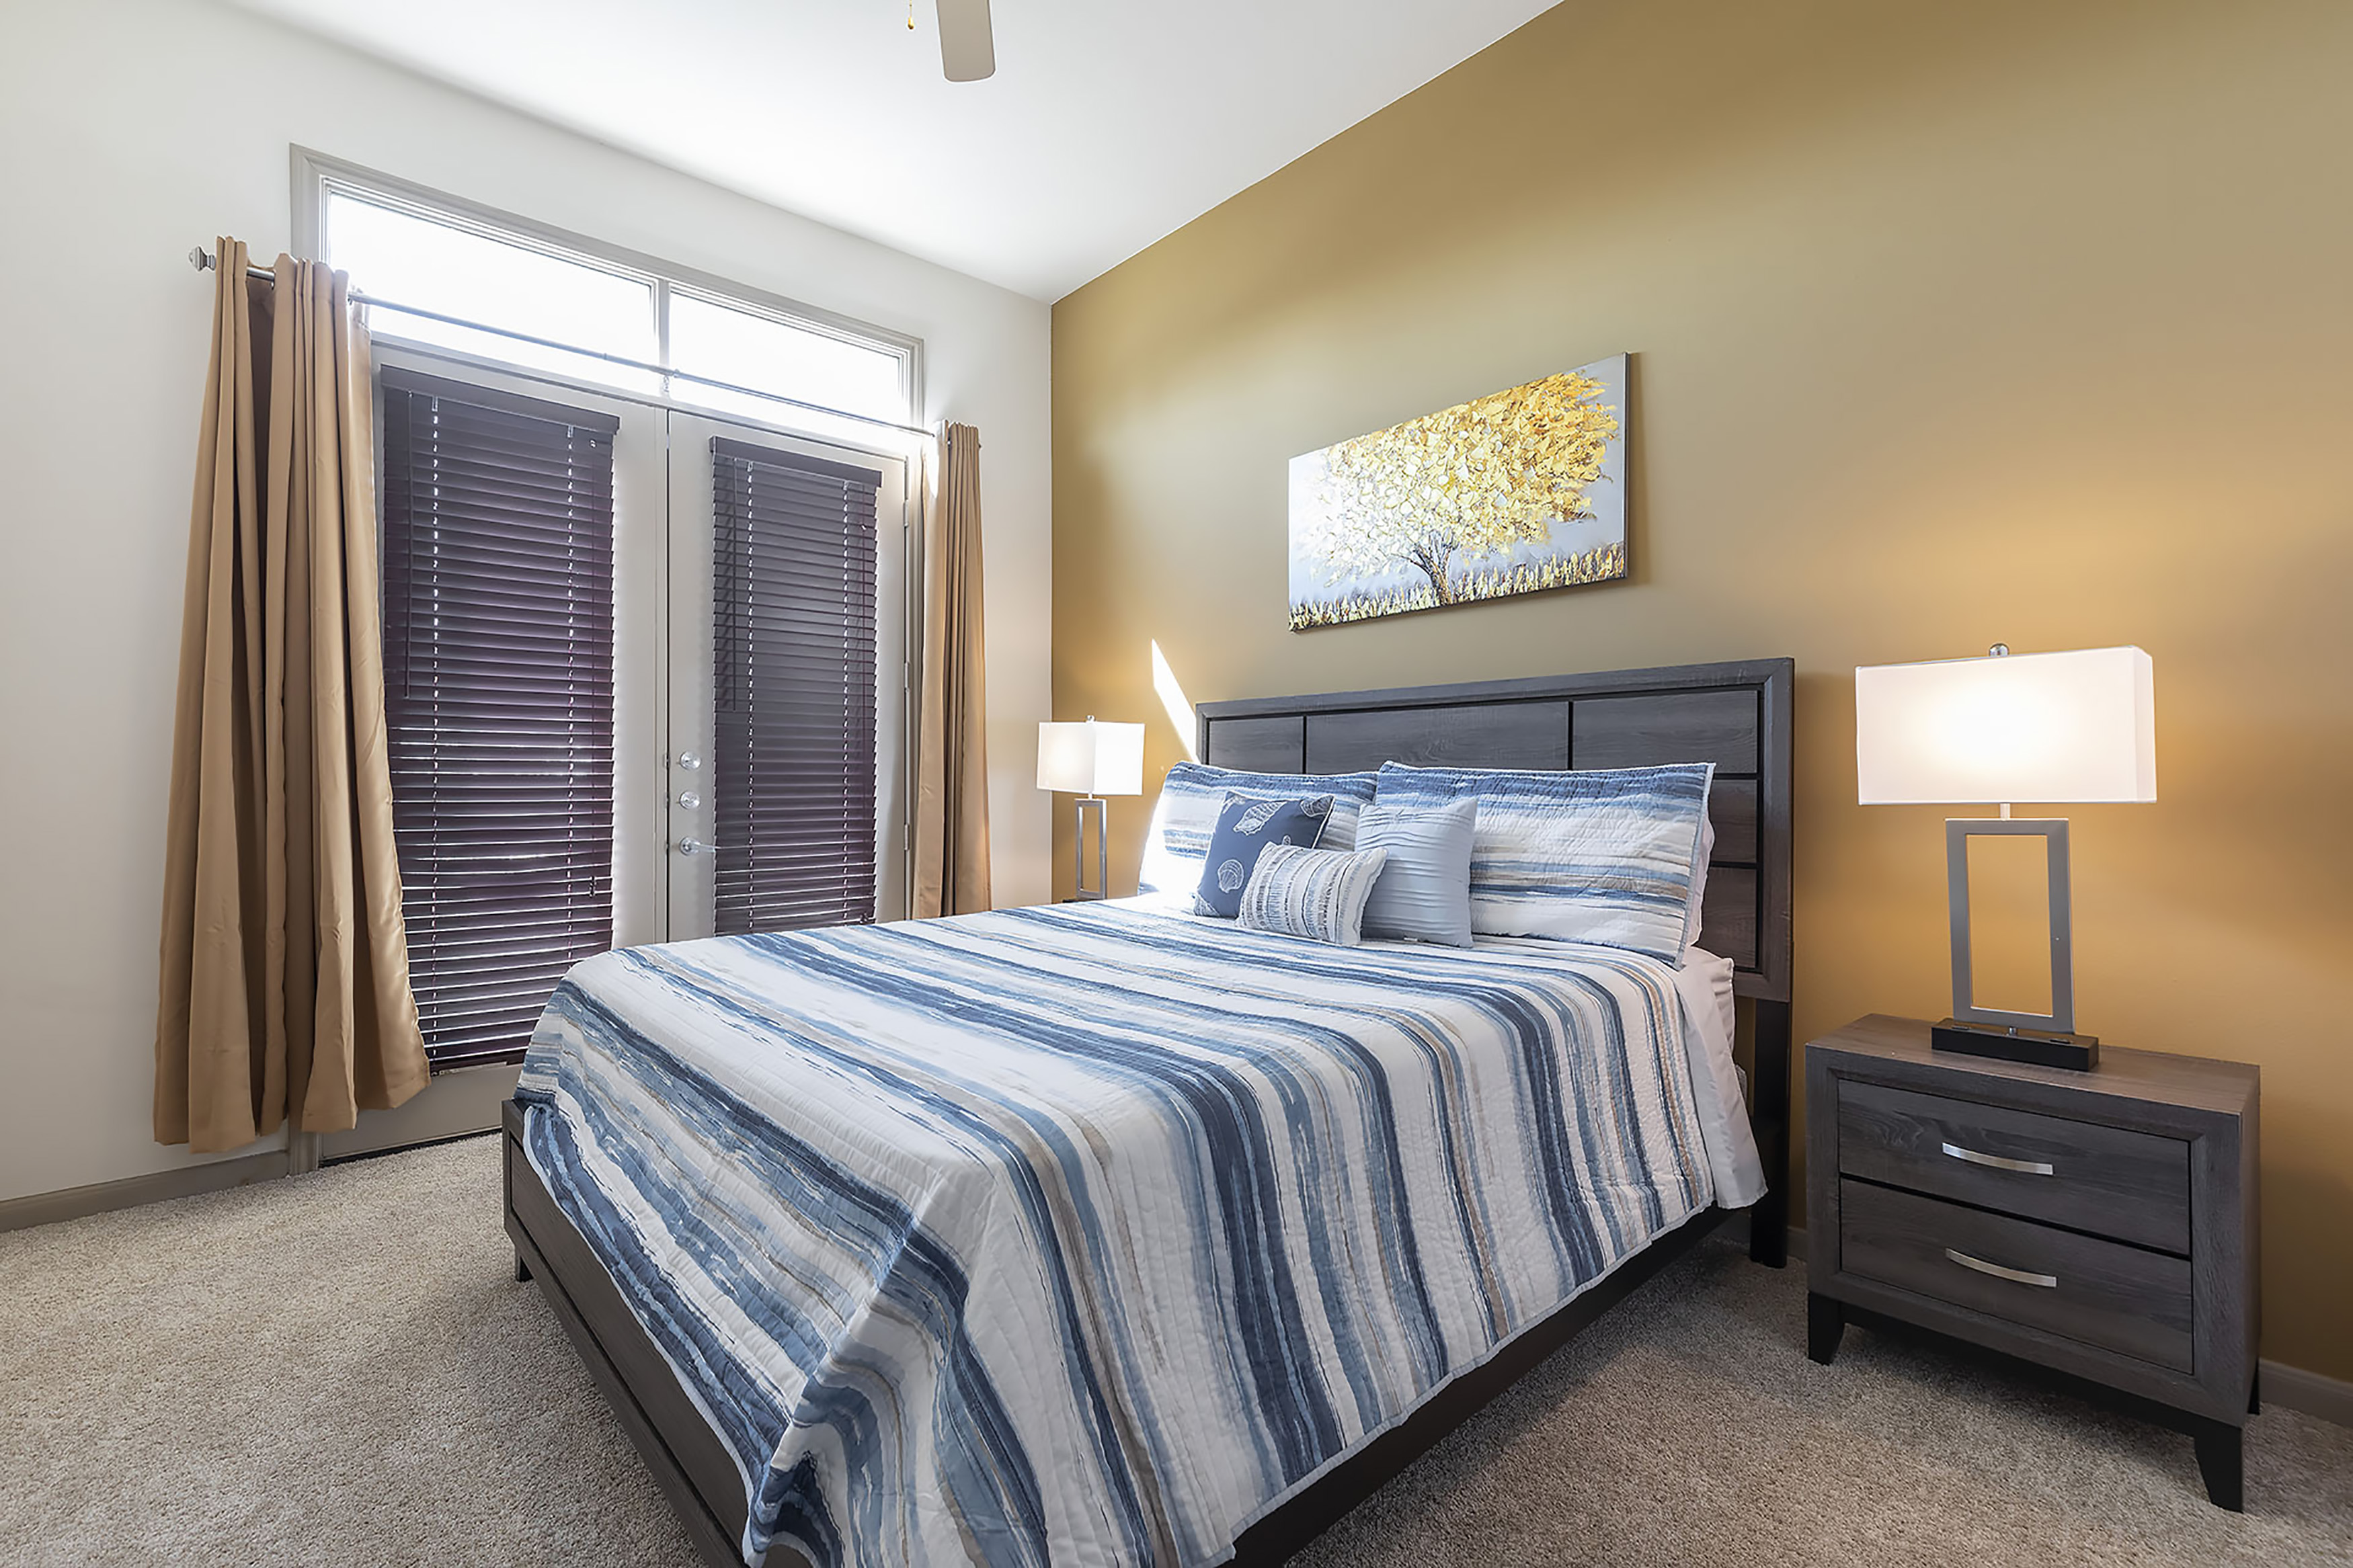 Apartment LUXURIOUS CALI KING BED MIDTOWN FULLY EQUIPPED CONDO -                 photo 21440936